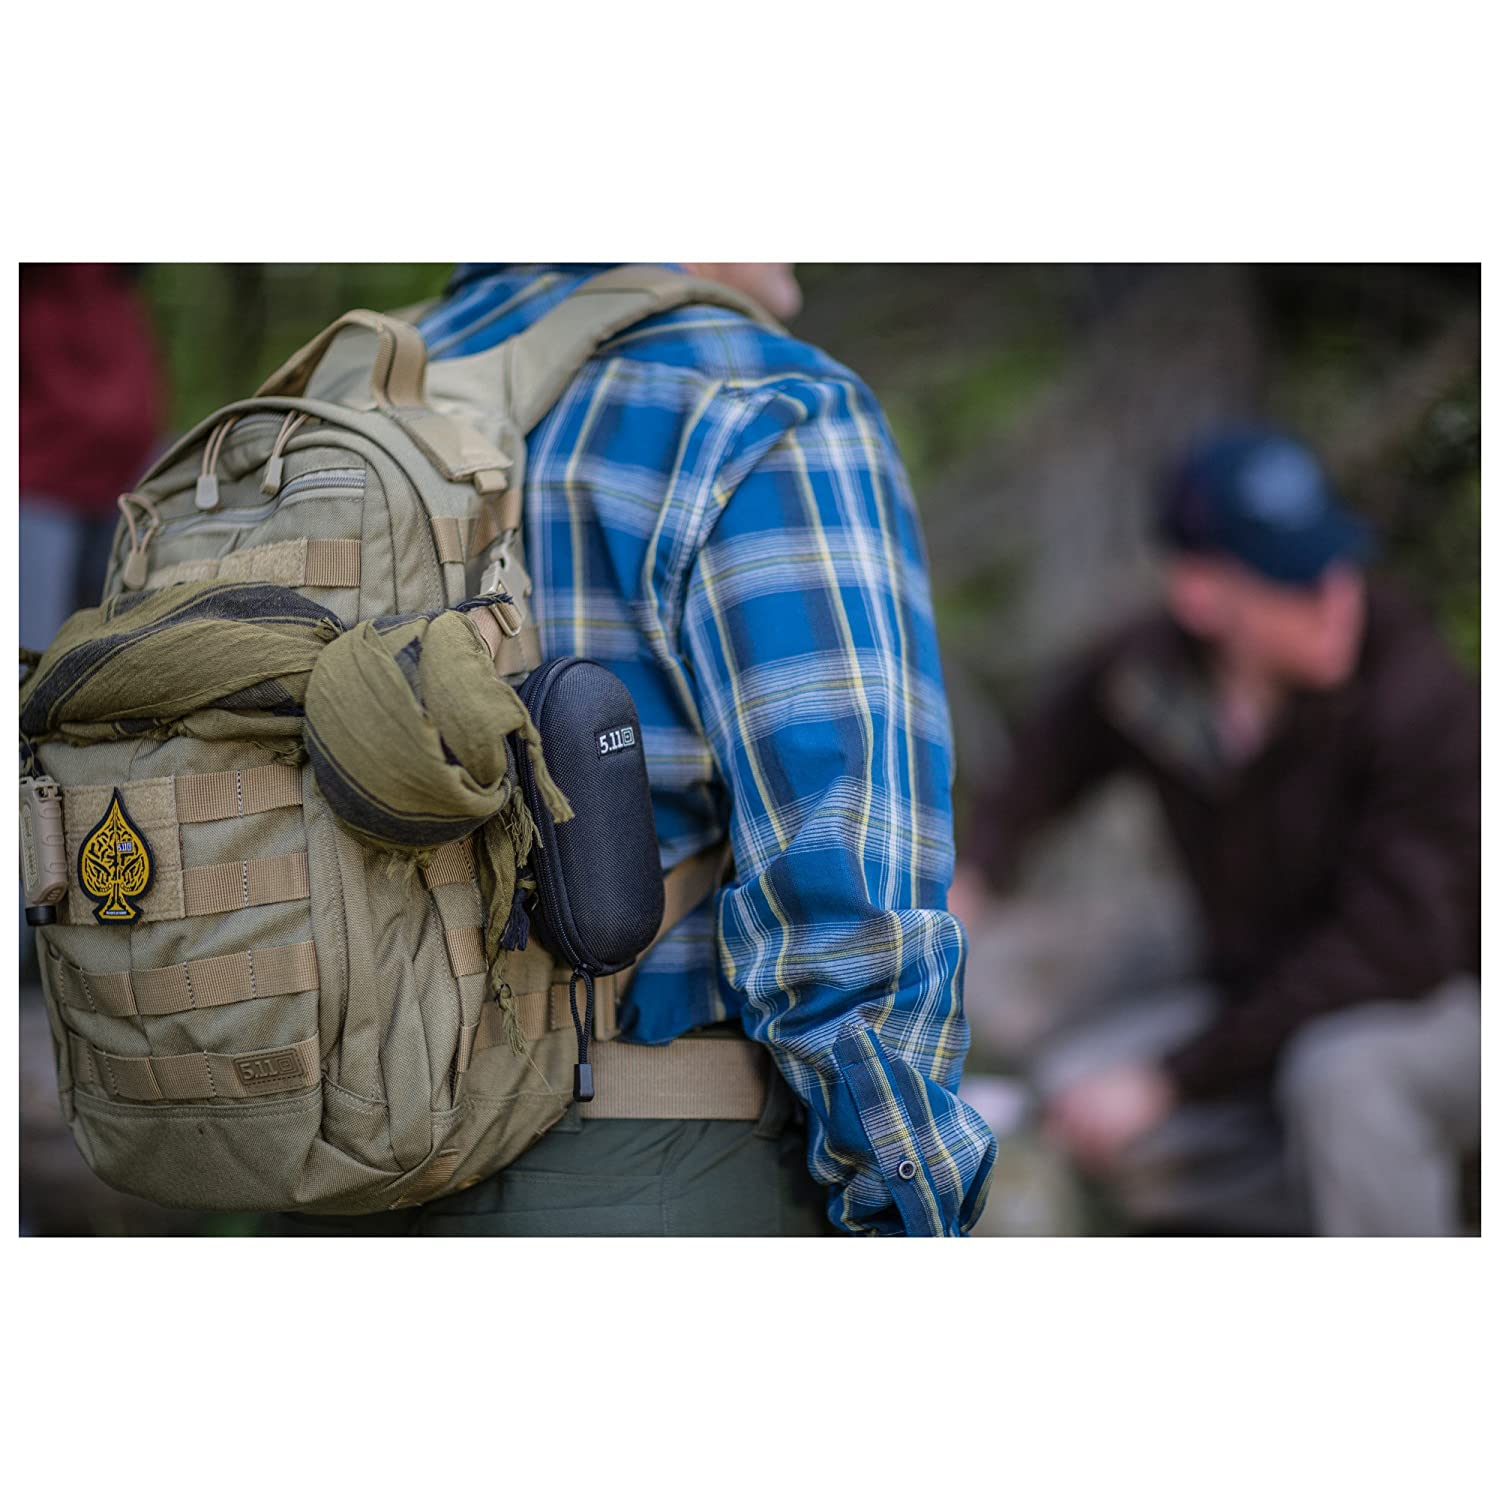 5.11 tactical backpack 511 rucksack